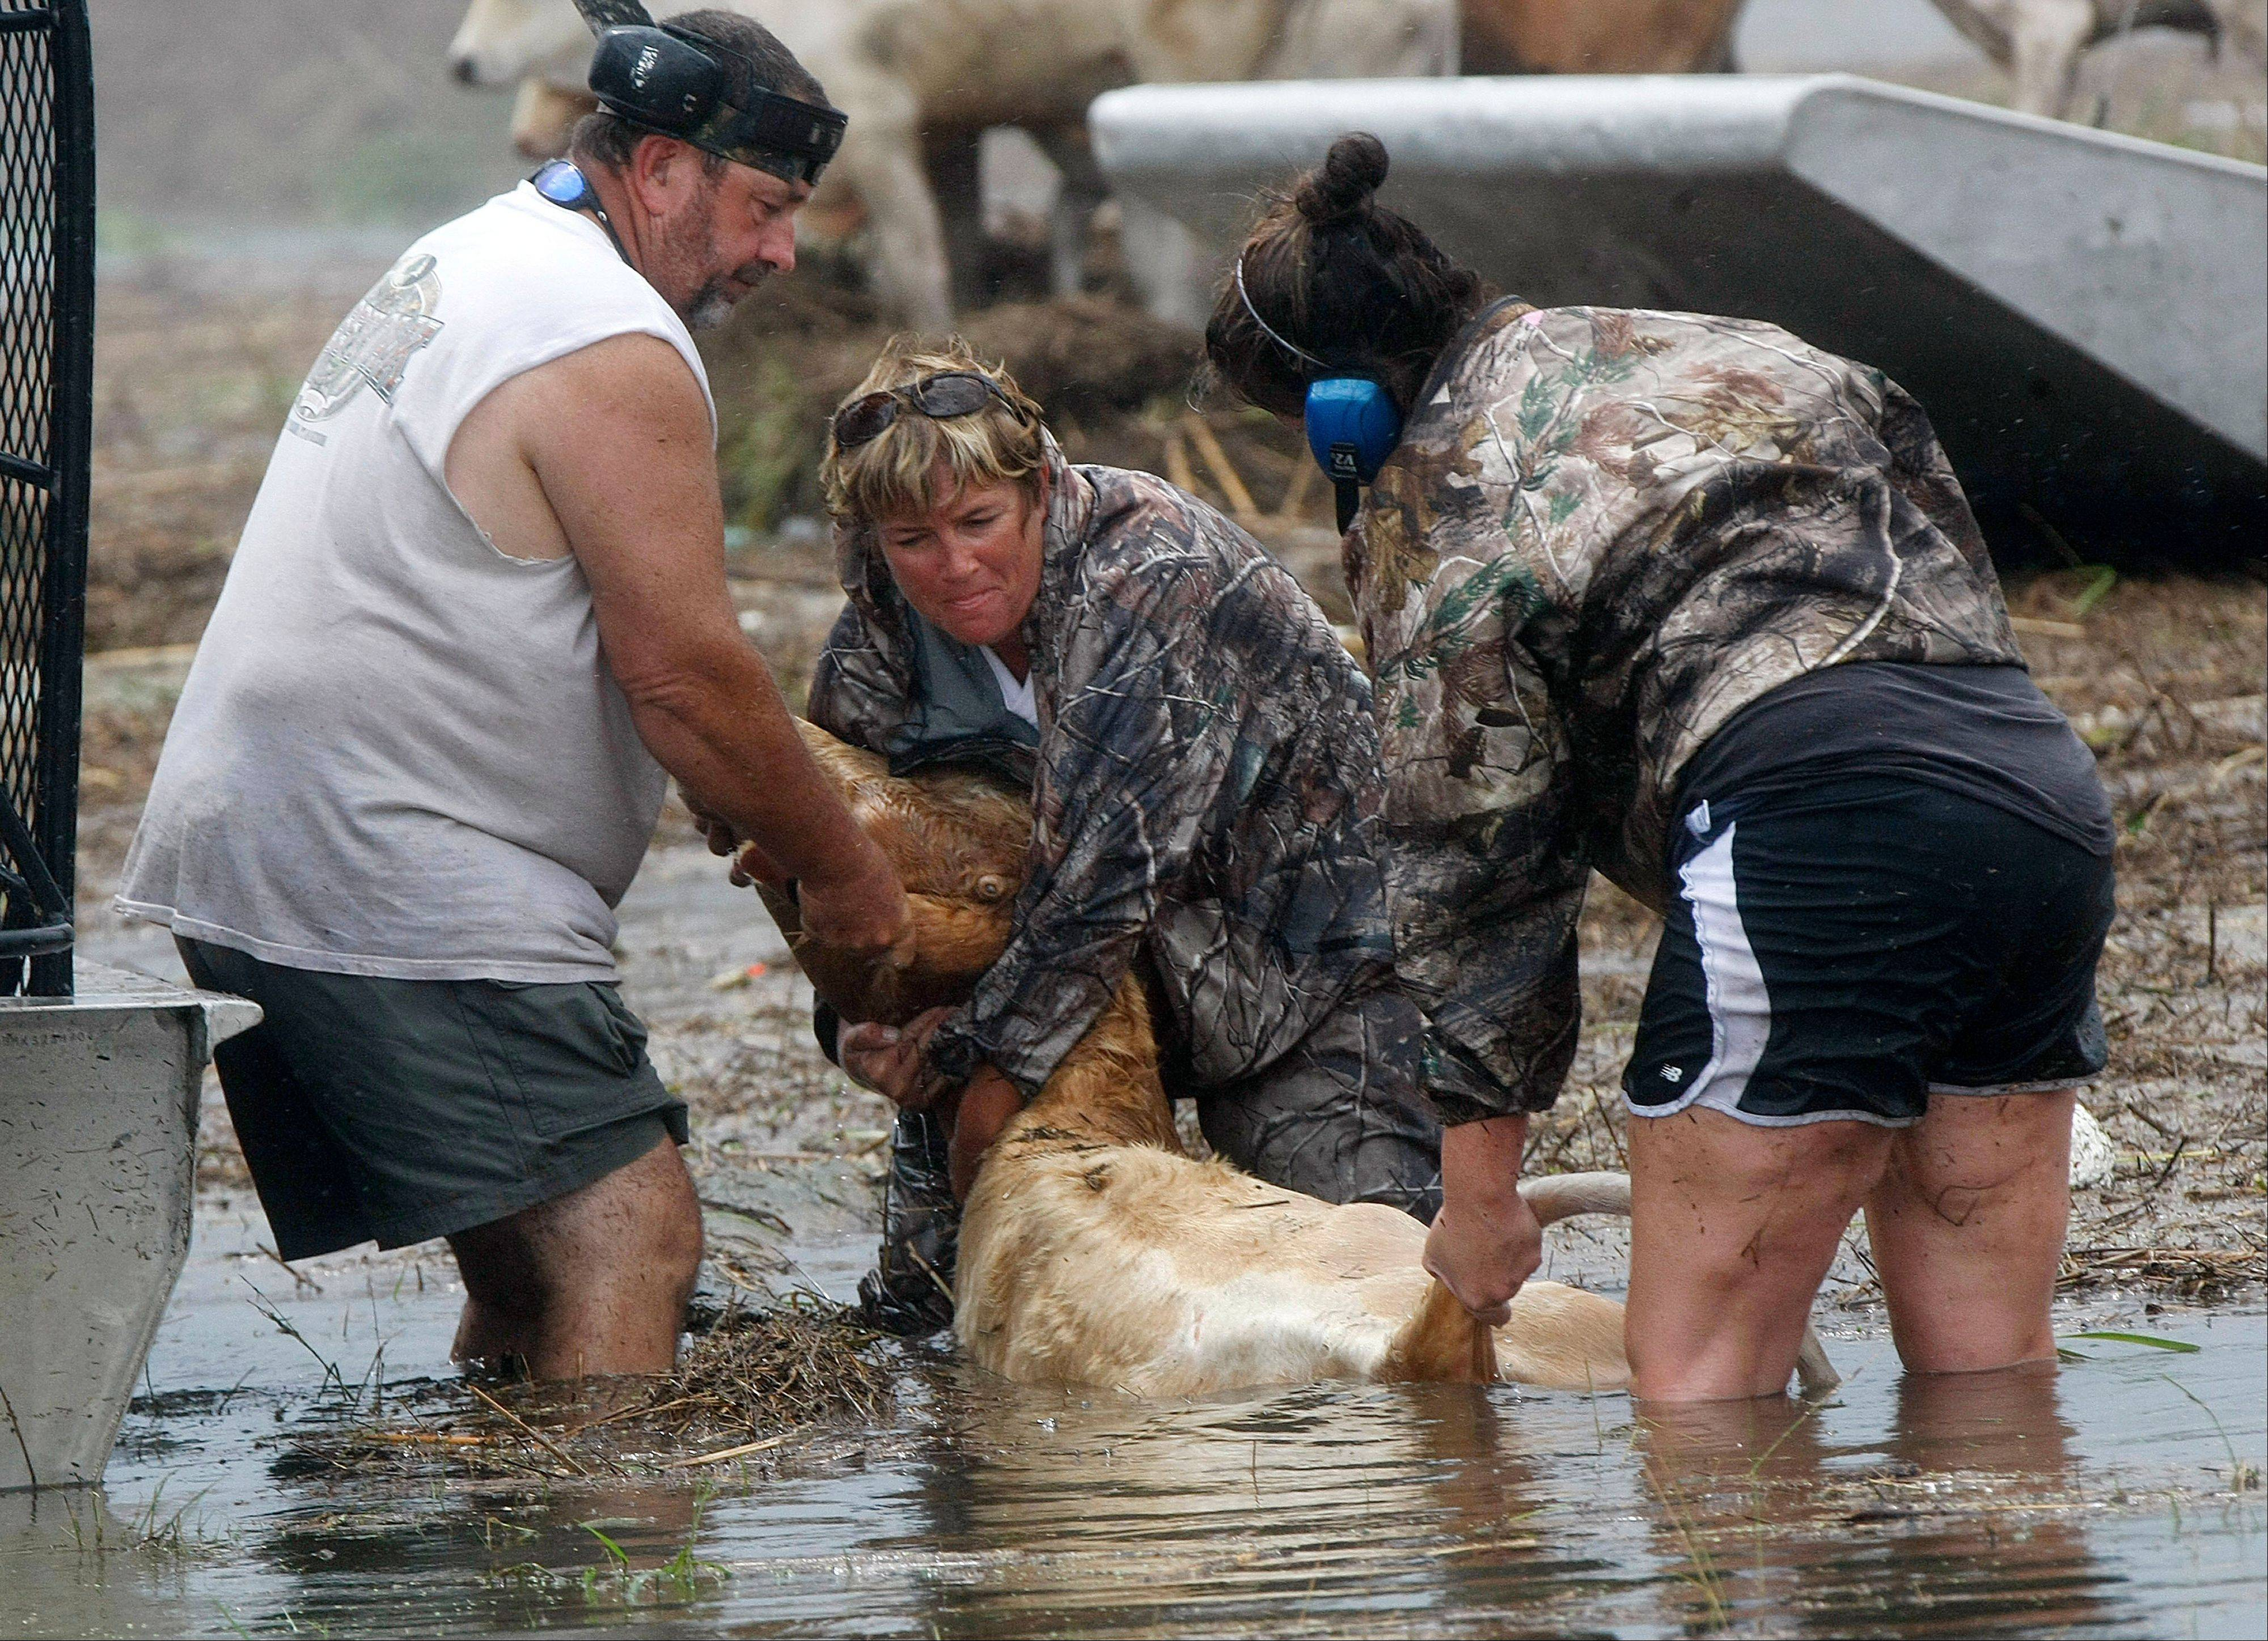 People try to rescue cattle from floodwaters after Isaac passed through the region, in Plaquemines Parish, La., Thursday, Aug. 30, 2012.